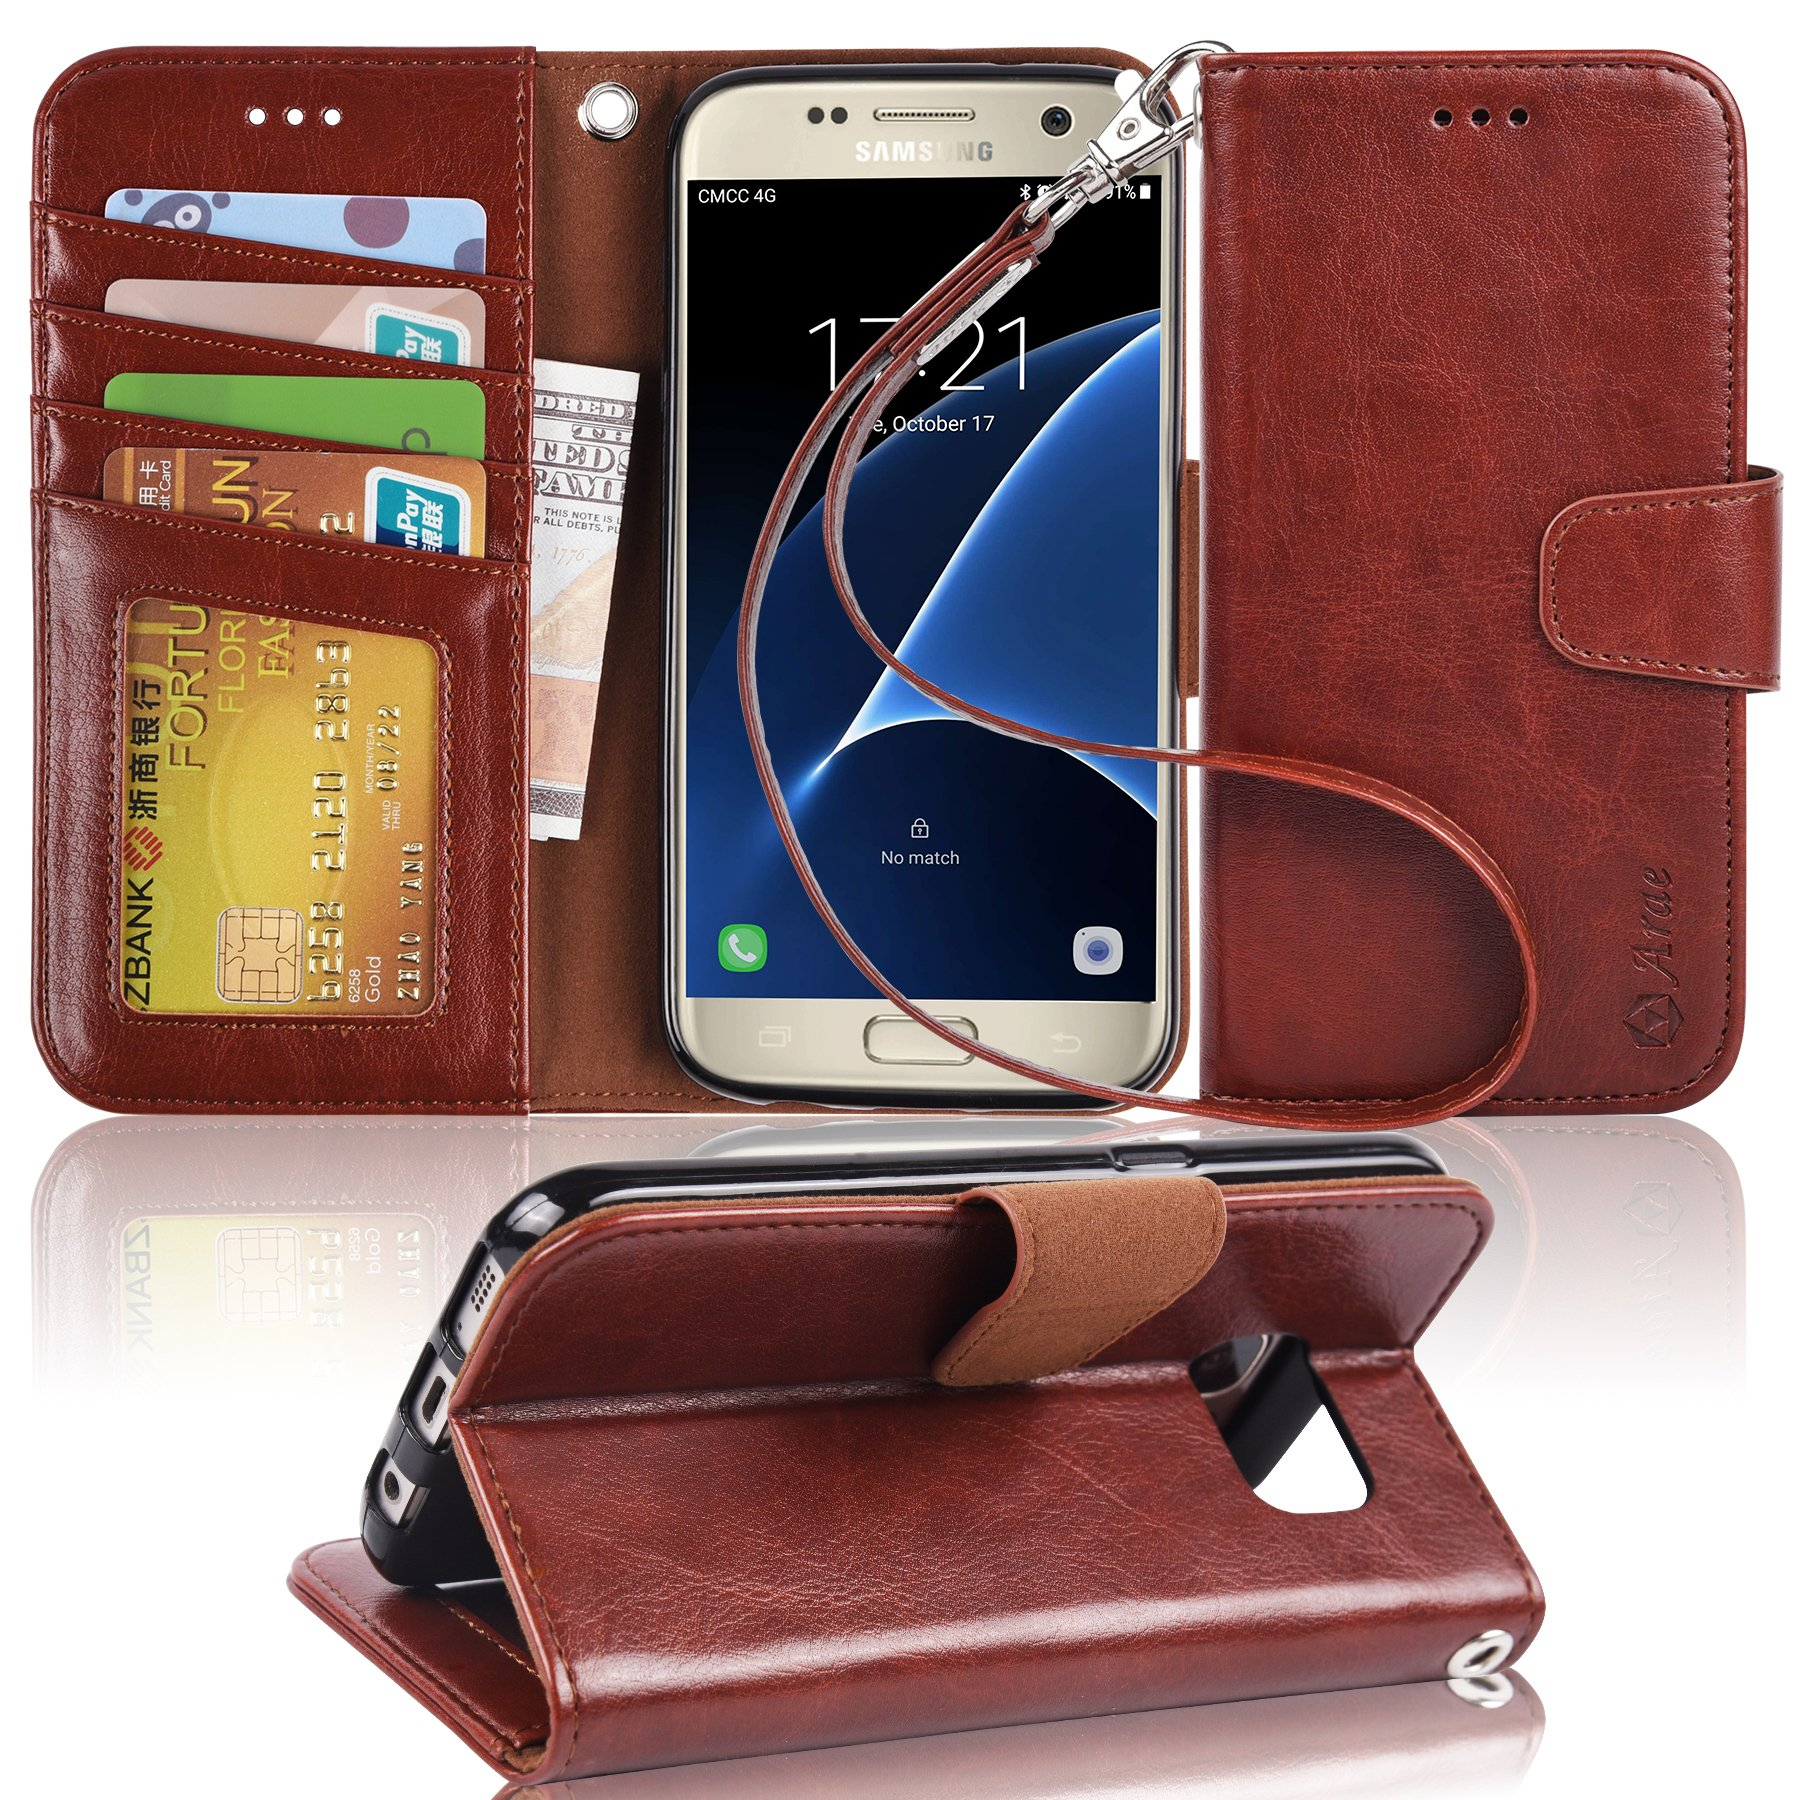 Arae Galaxy s7 Case, [Wrist Strap] Flip Folio [Kickstand Feature] PU leather wallet case with ID&Credit Card Pockets For Samsung Galaxy S7 (brown)